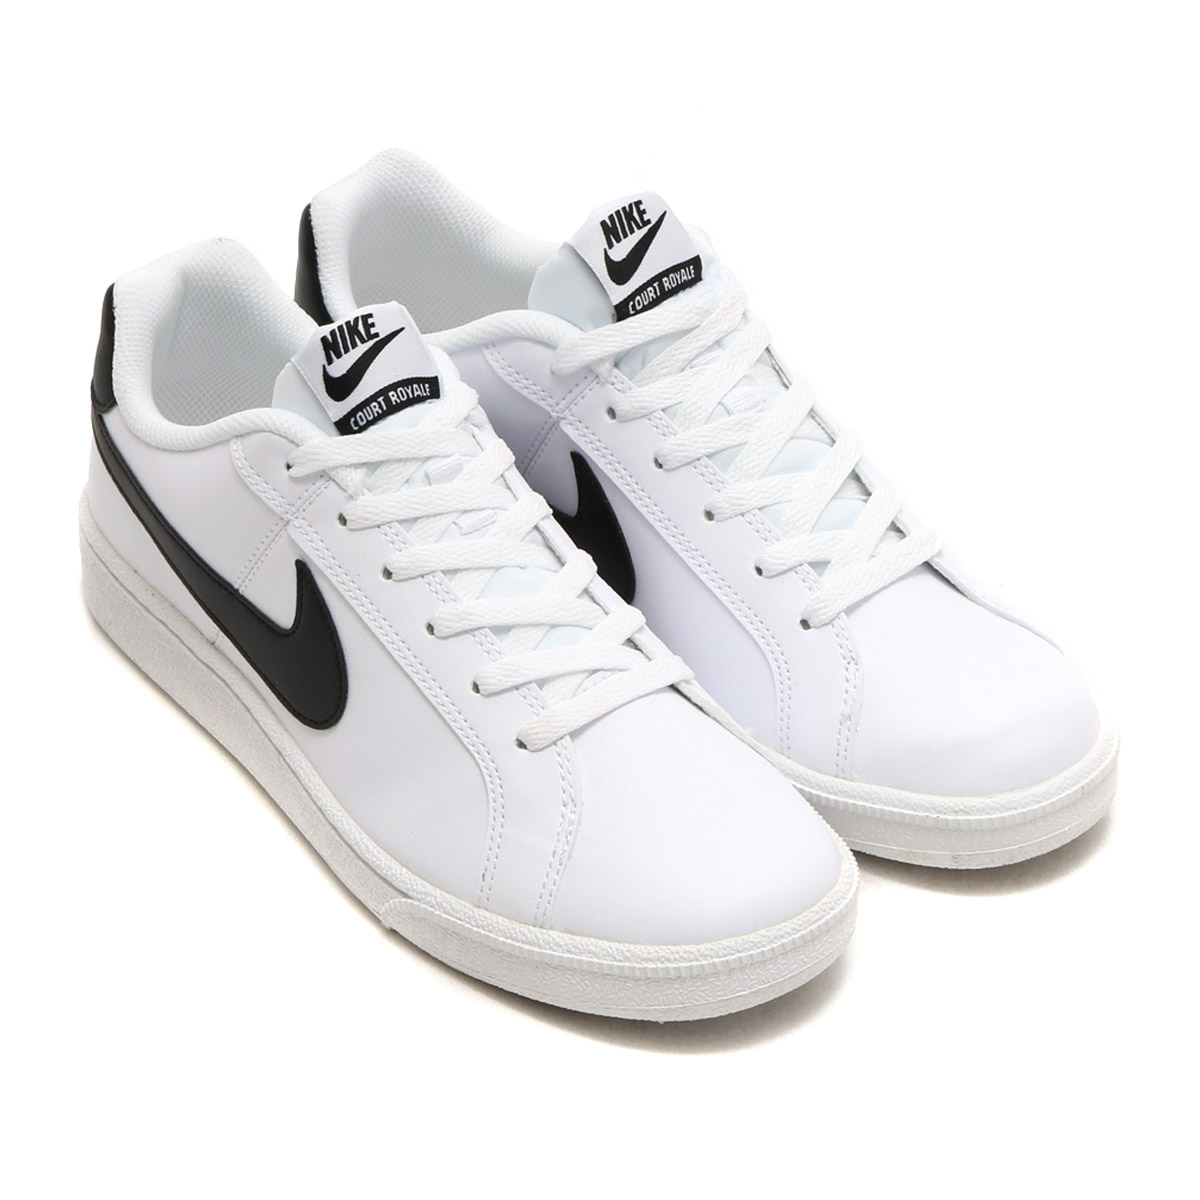 ★SALE ★ NIKE COURT ROYALE SL (Nike coat royal SL) WHITE/BLACK 17HO-I